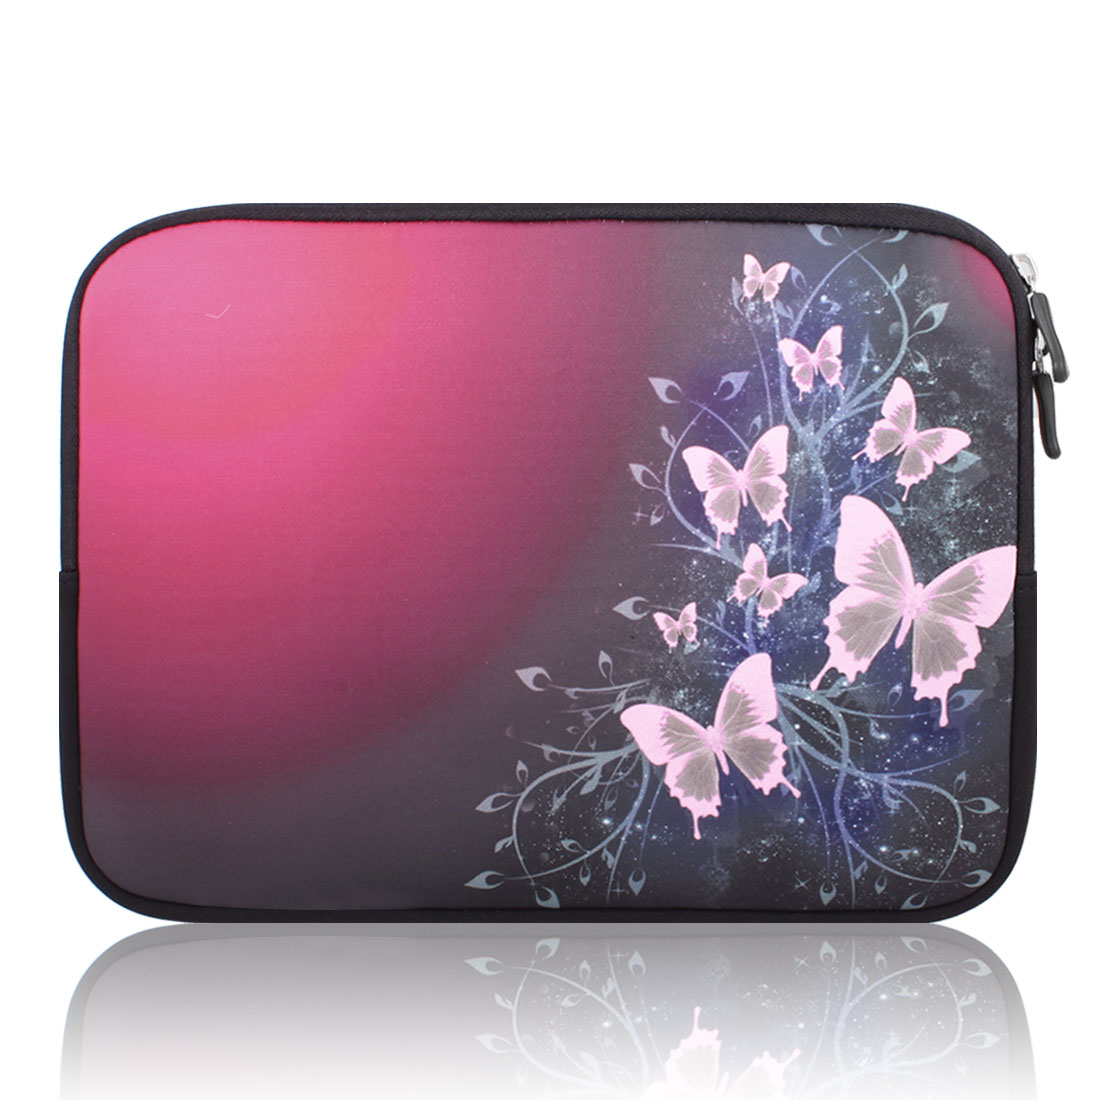 "Butterfly 10"" 10.1"" 10.2"" Neoprene Notebook Laptop Sleeve Bag Case"